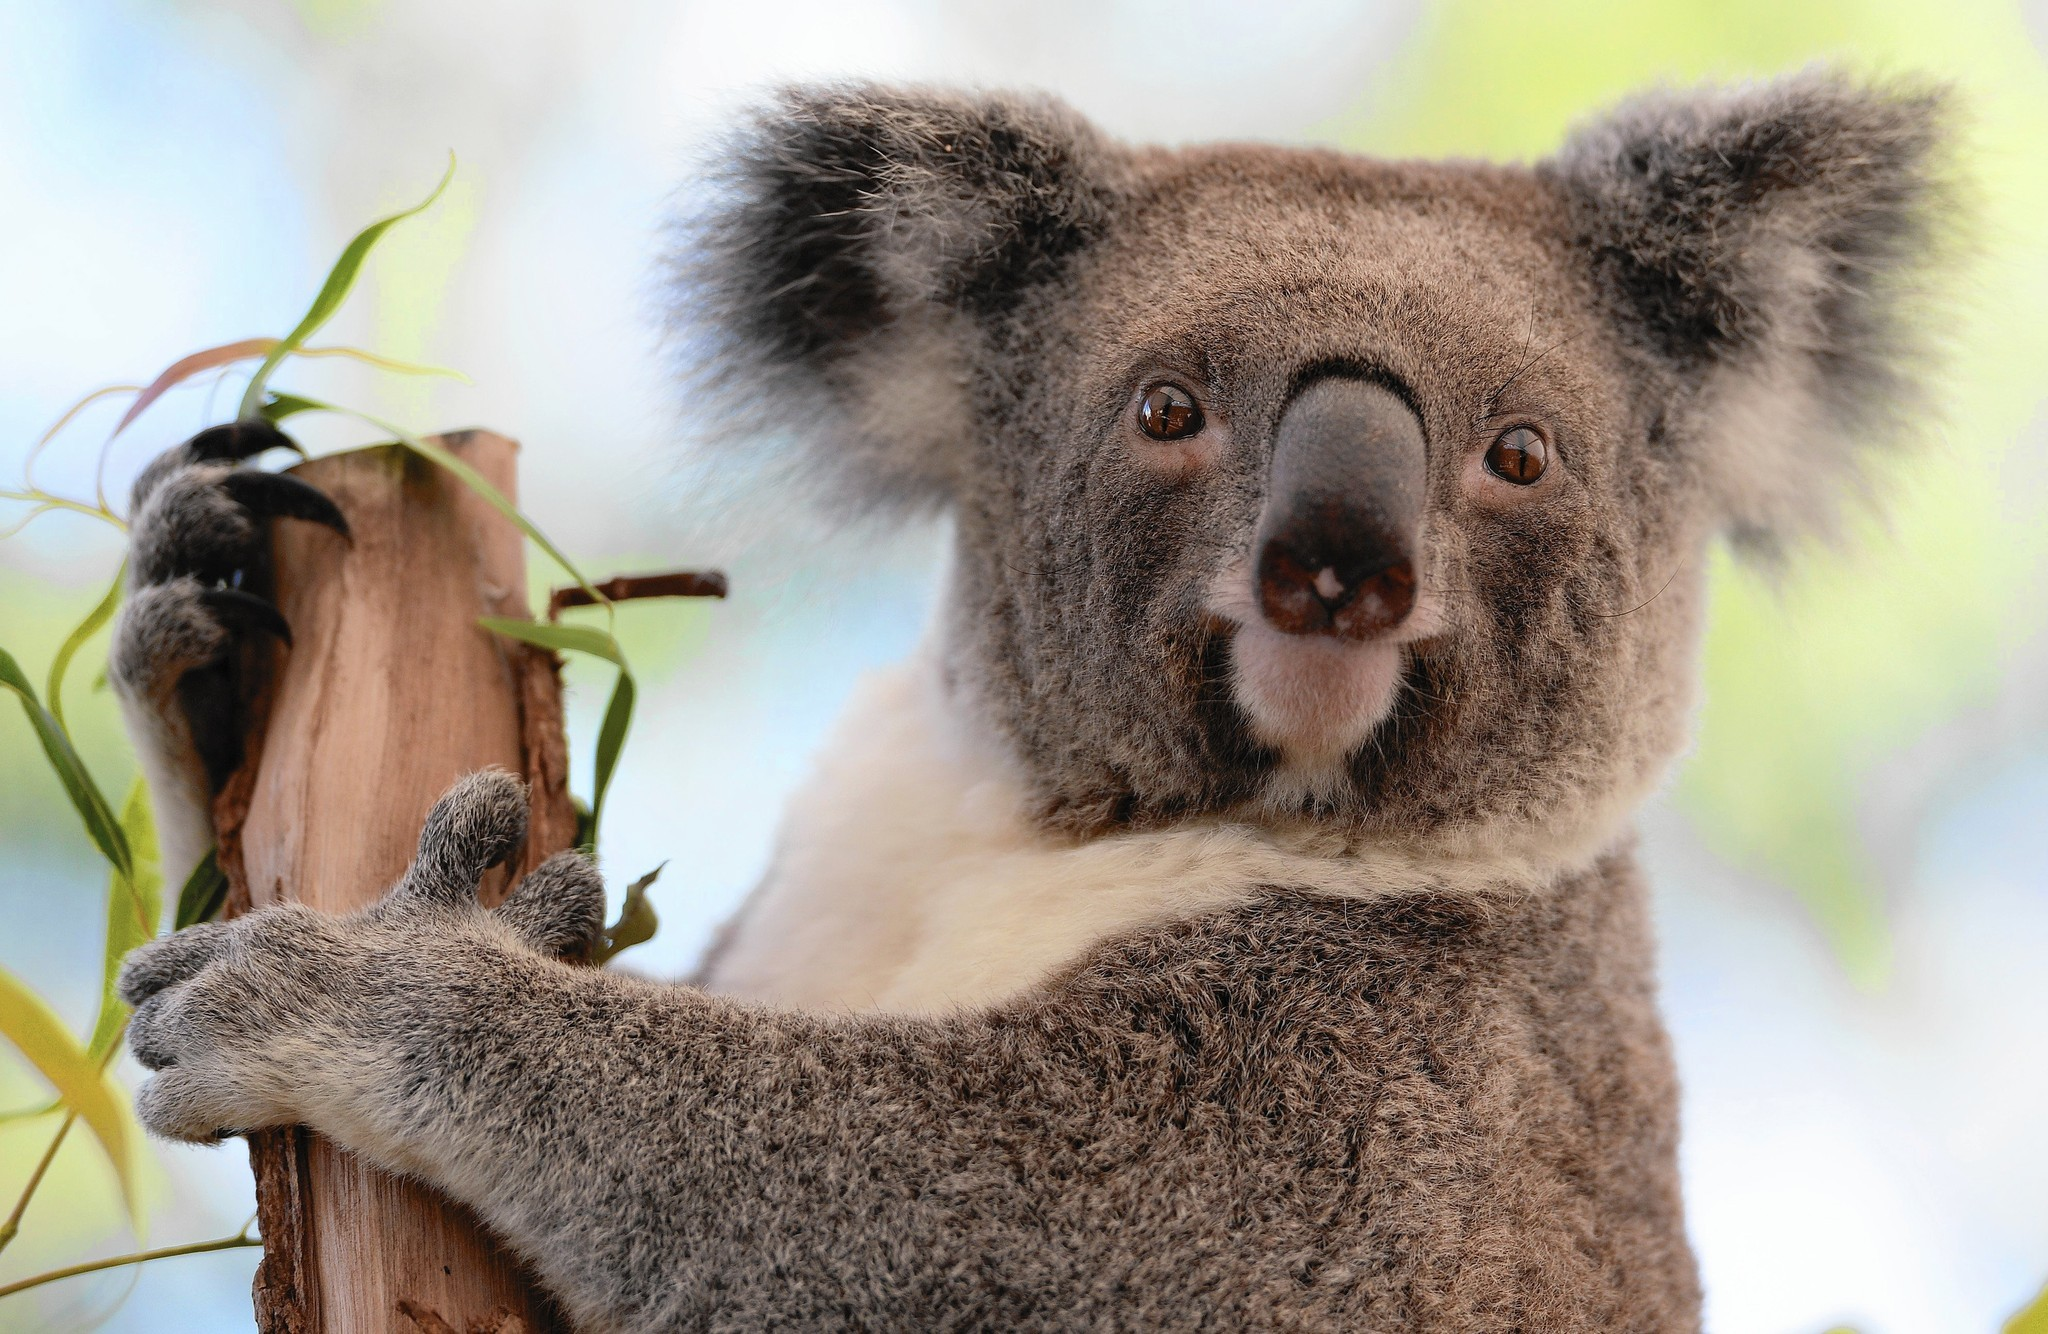 koala study sheds light on their surprising mating habits koala study sheds light on their surprising mating habits chicago tribune